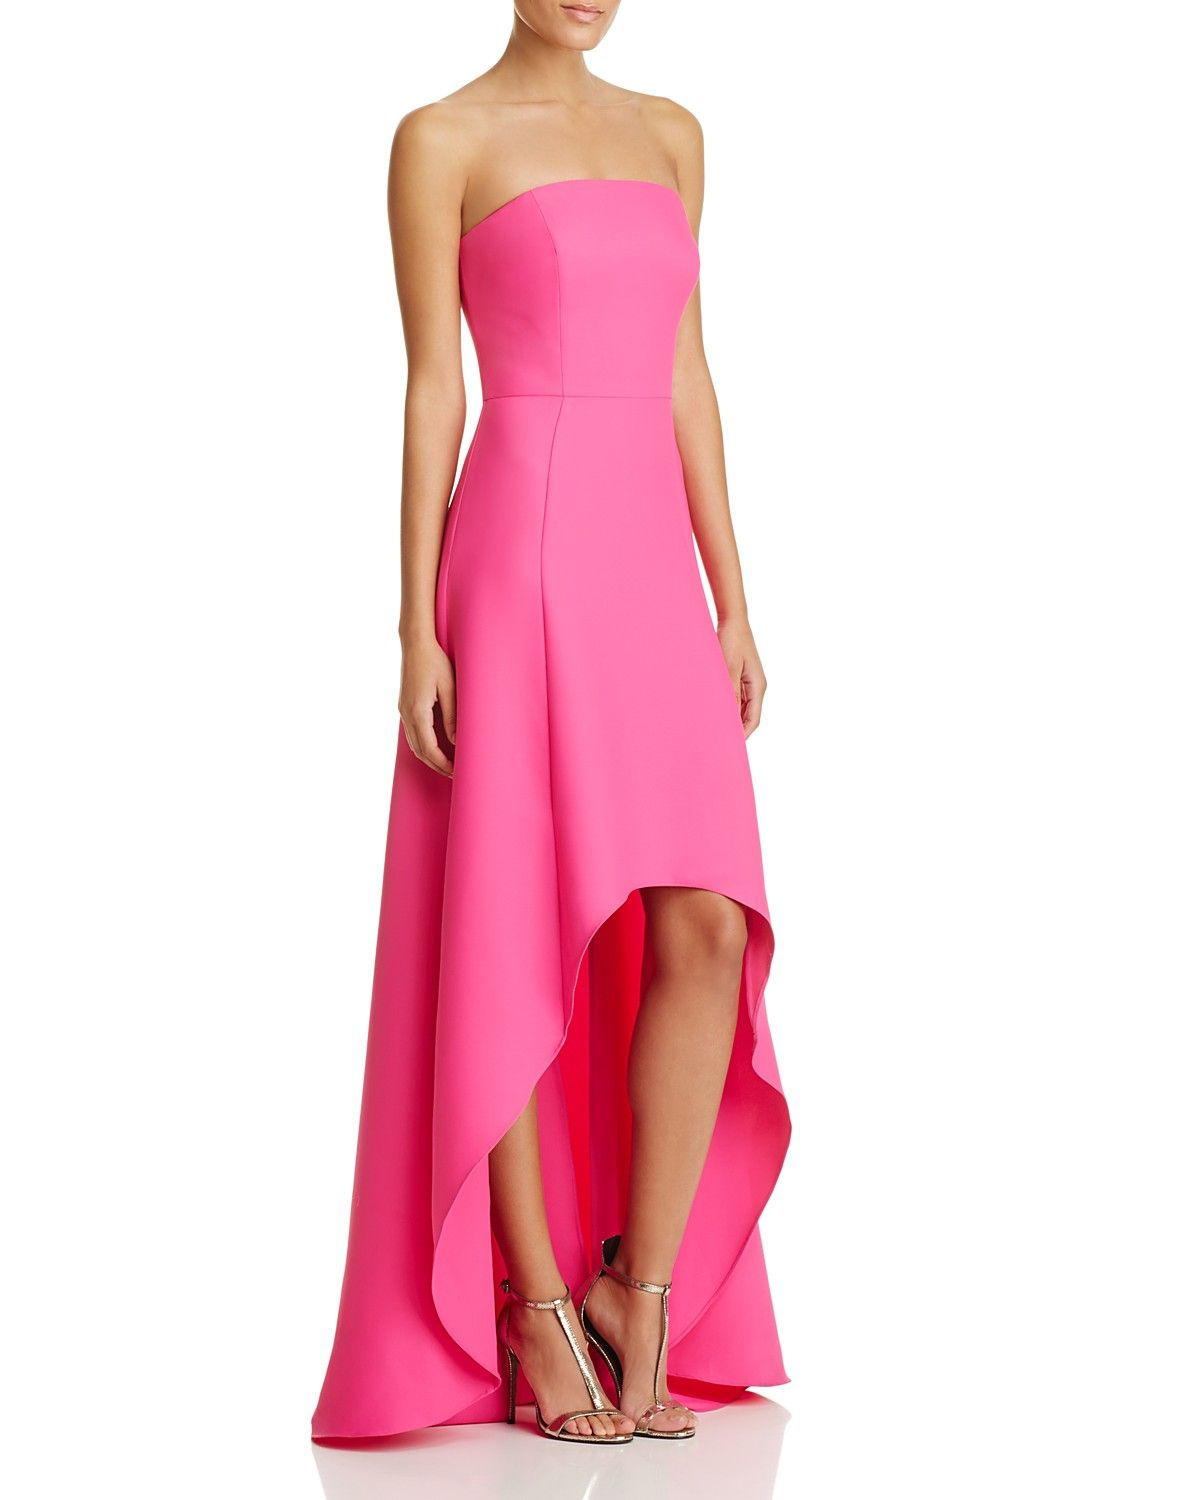 Laundry by Shelli Segal Strapless High Low Gown   Evening   Pinterest